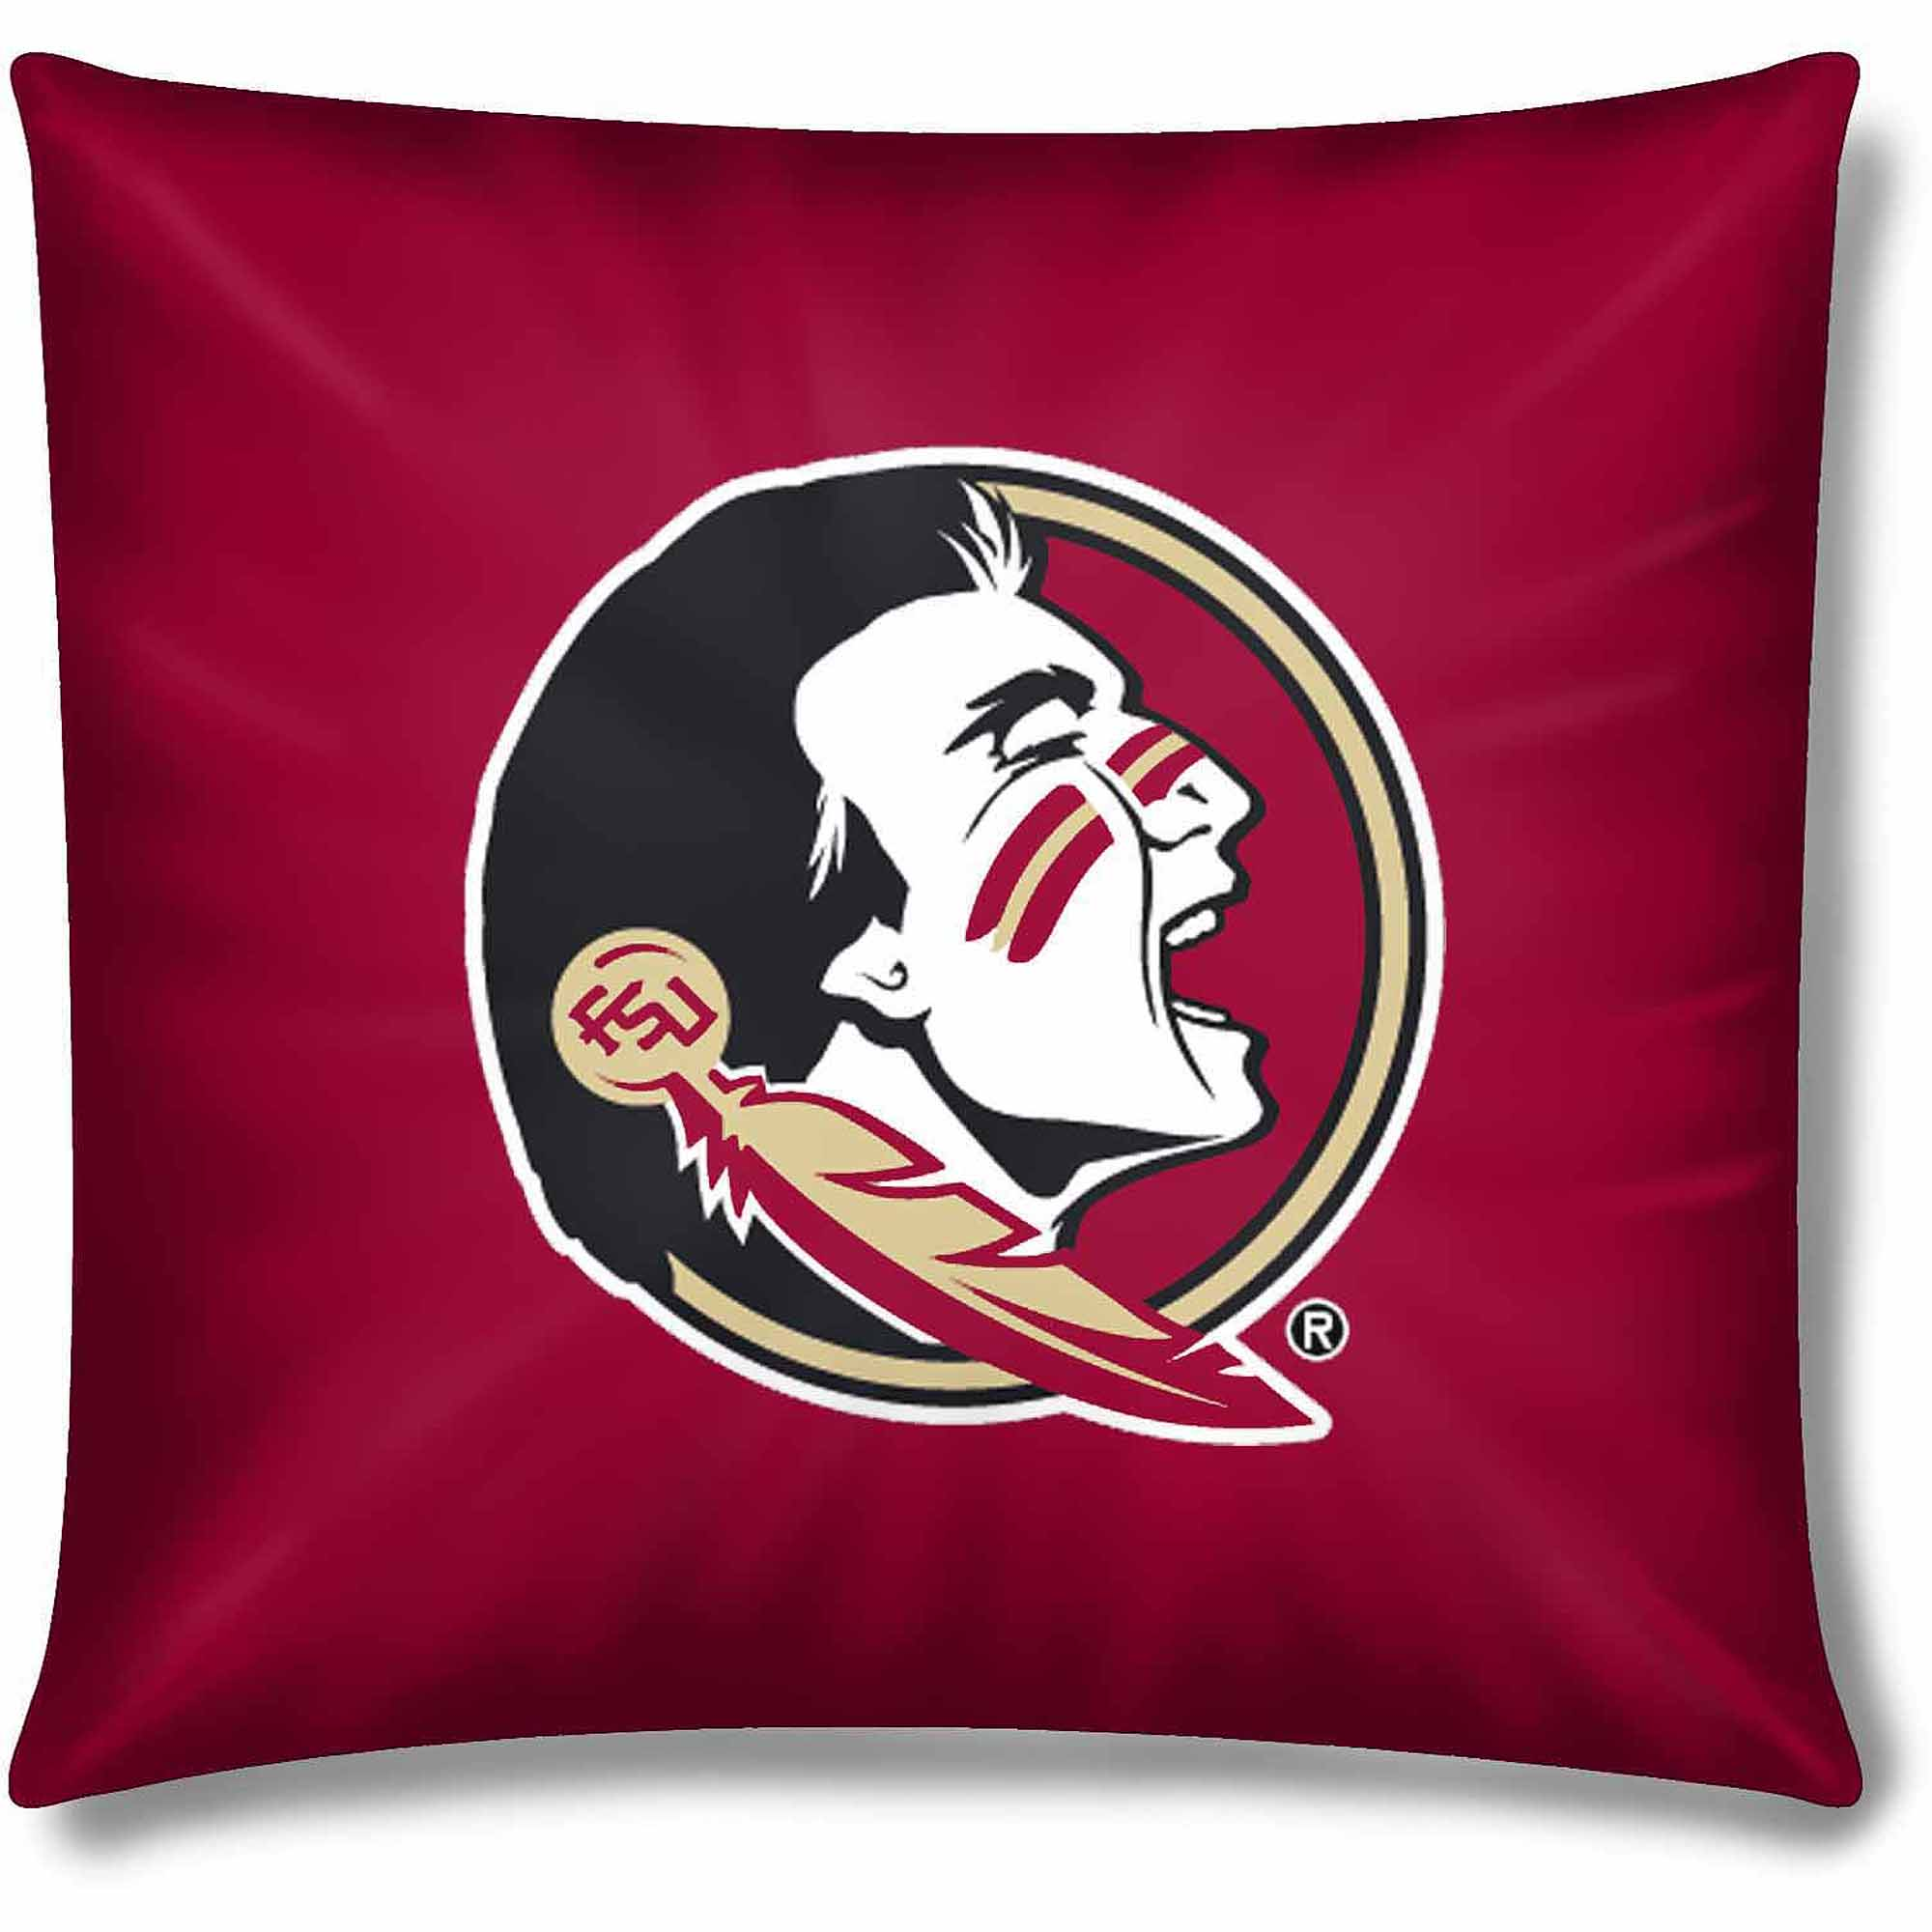 "Florida State Official 15"" Toss Pillow"